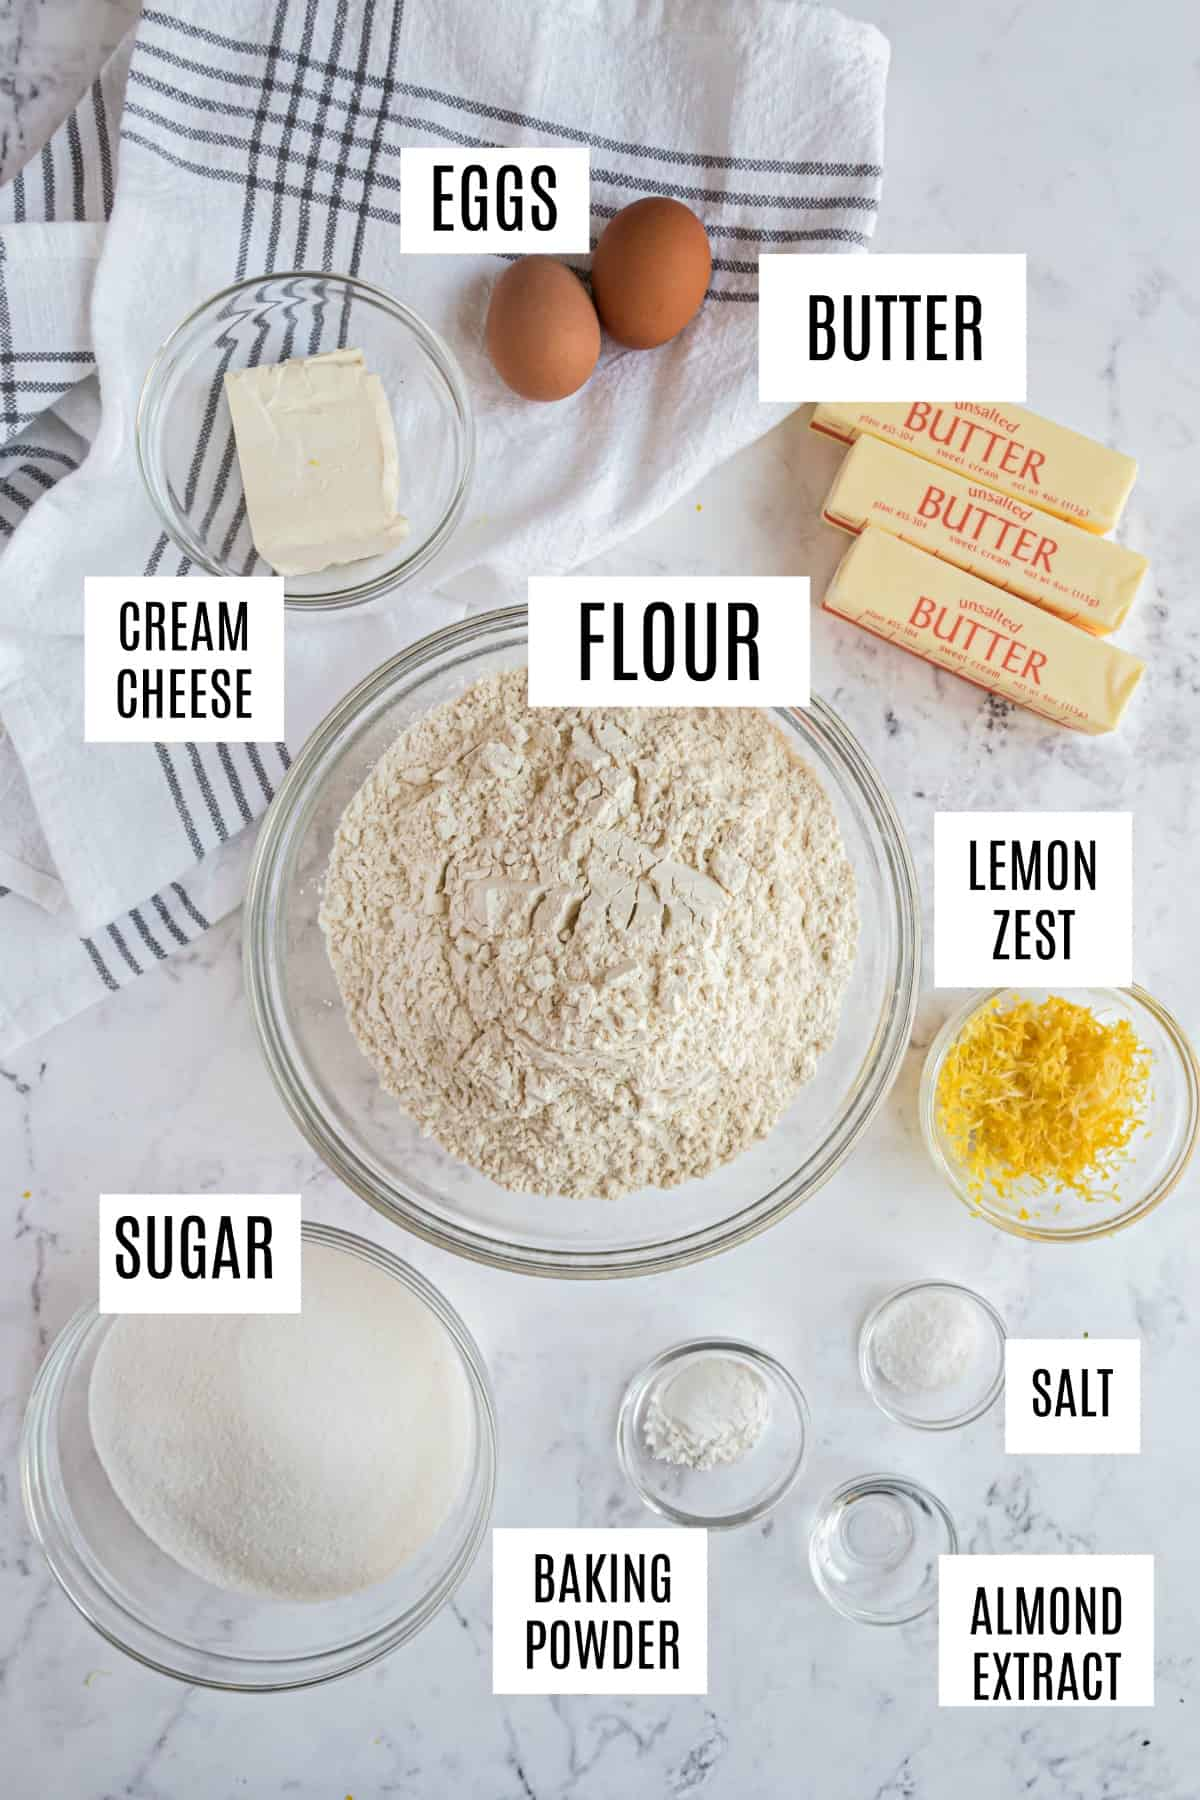 Ingredients needed for cut out sugar cookies including butter, cream cheese, and sugar.